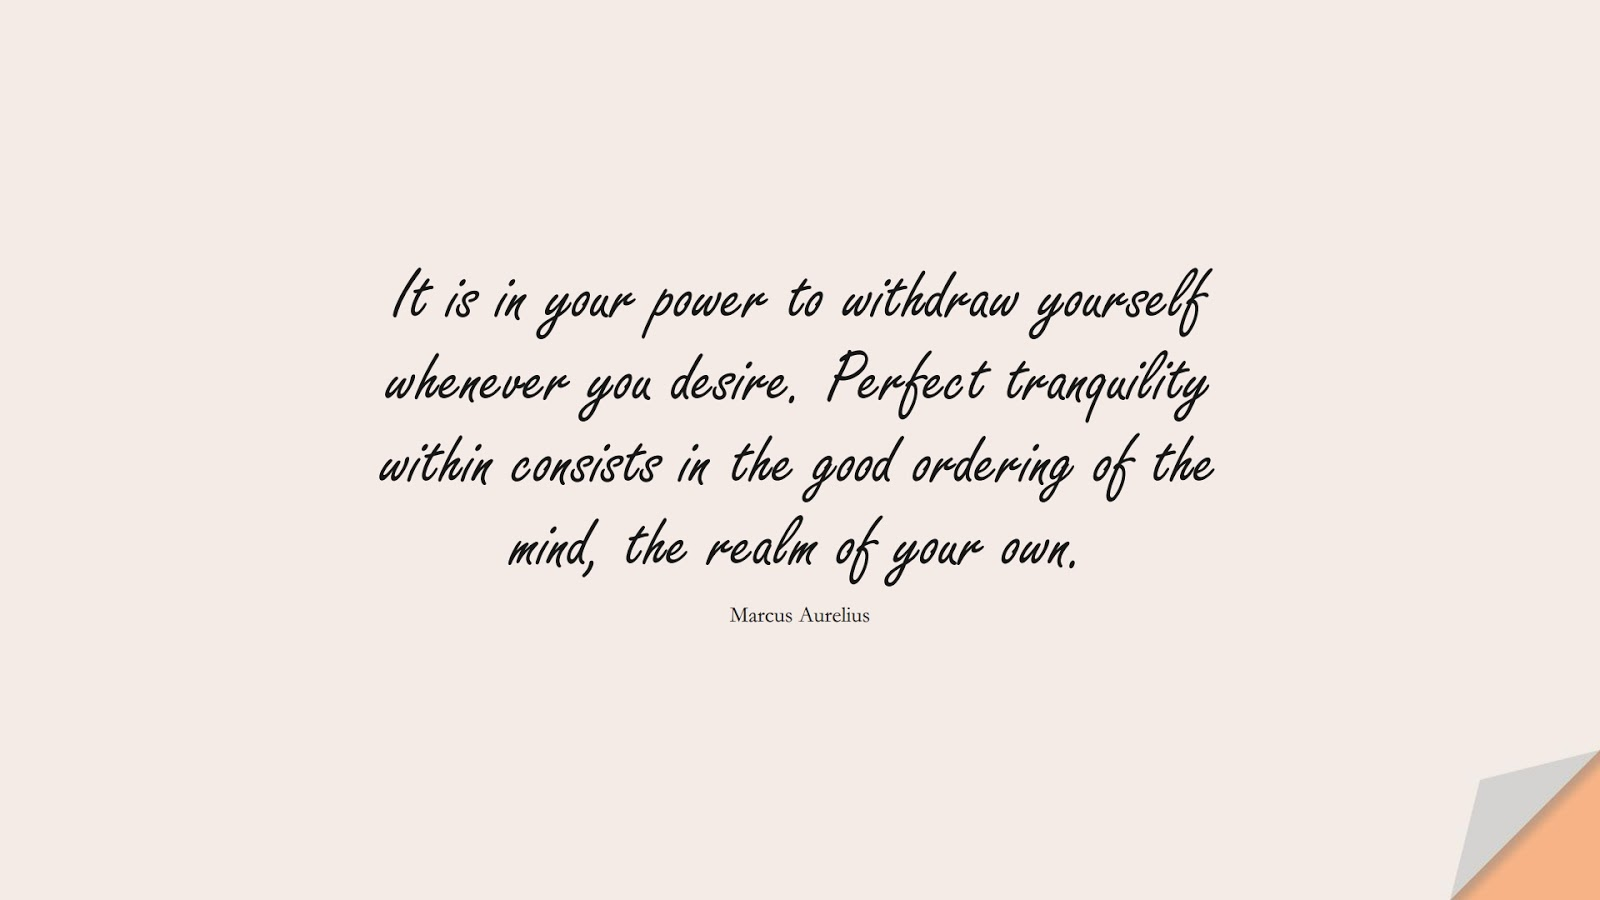 It is in your power to withdraw yourself whenever you desire. Perfect tranquility within consists in the good ordering of the mind, the realm of your own. (Marcus Aurelius);  #BestQuotes